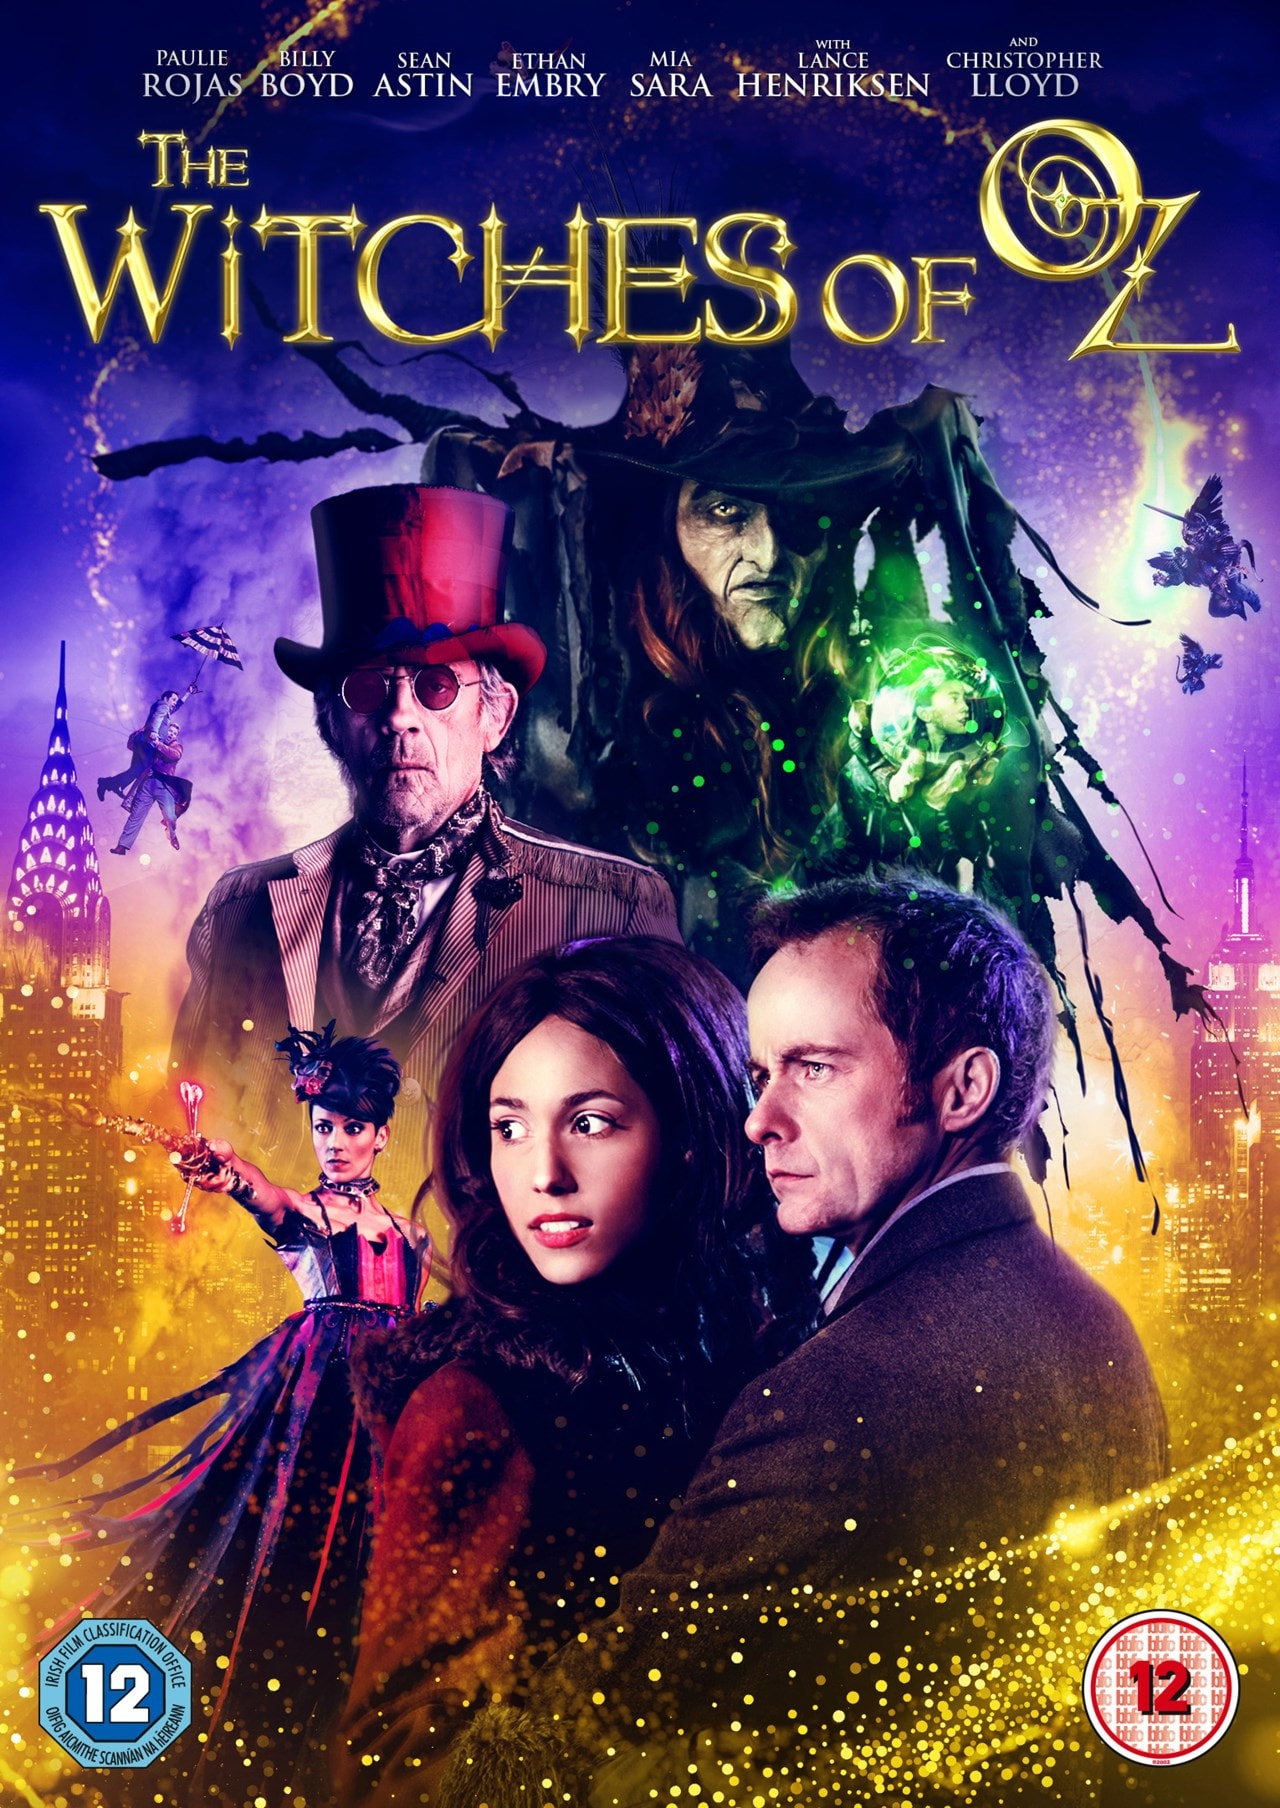 The Witches of Oz - 1